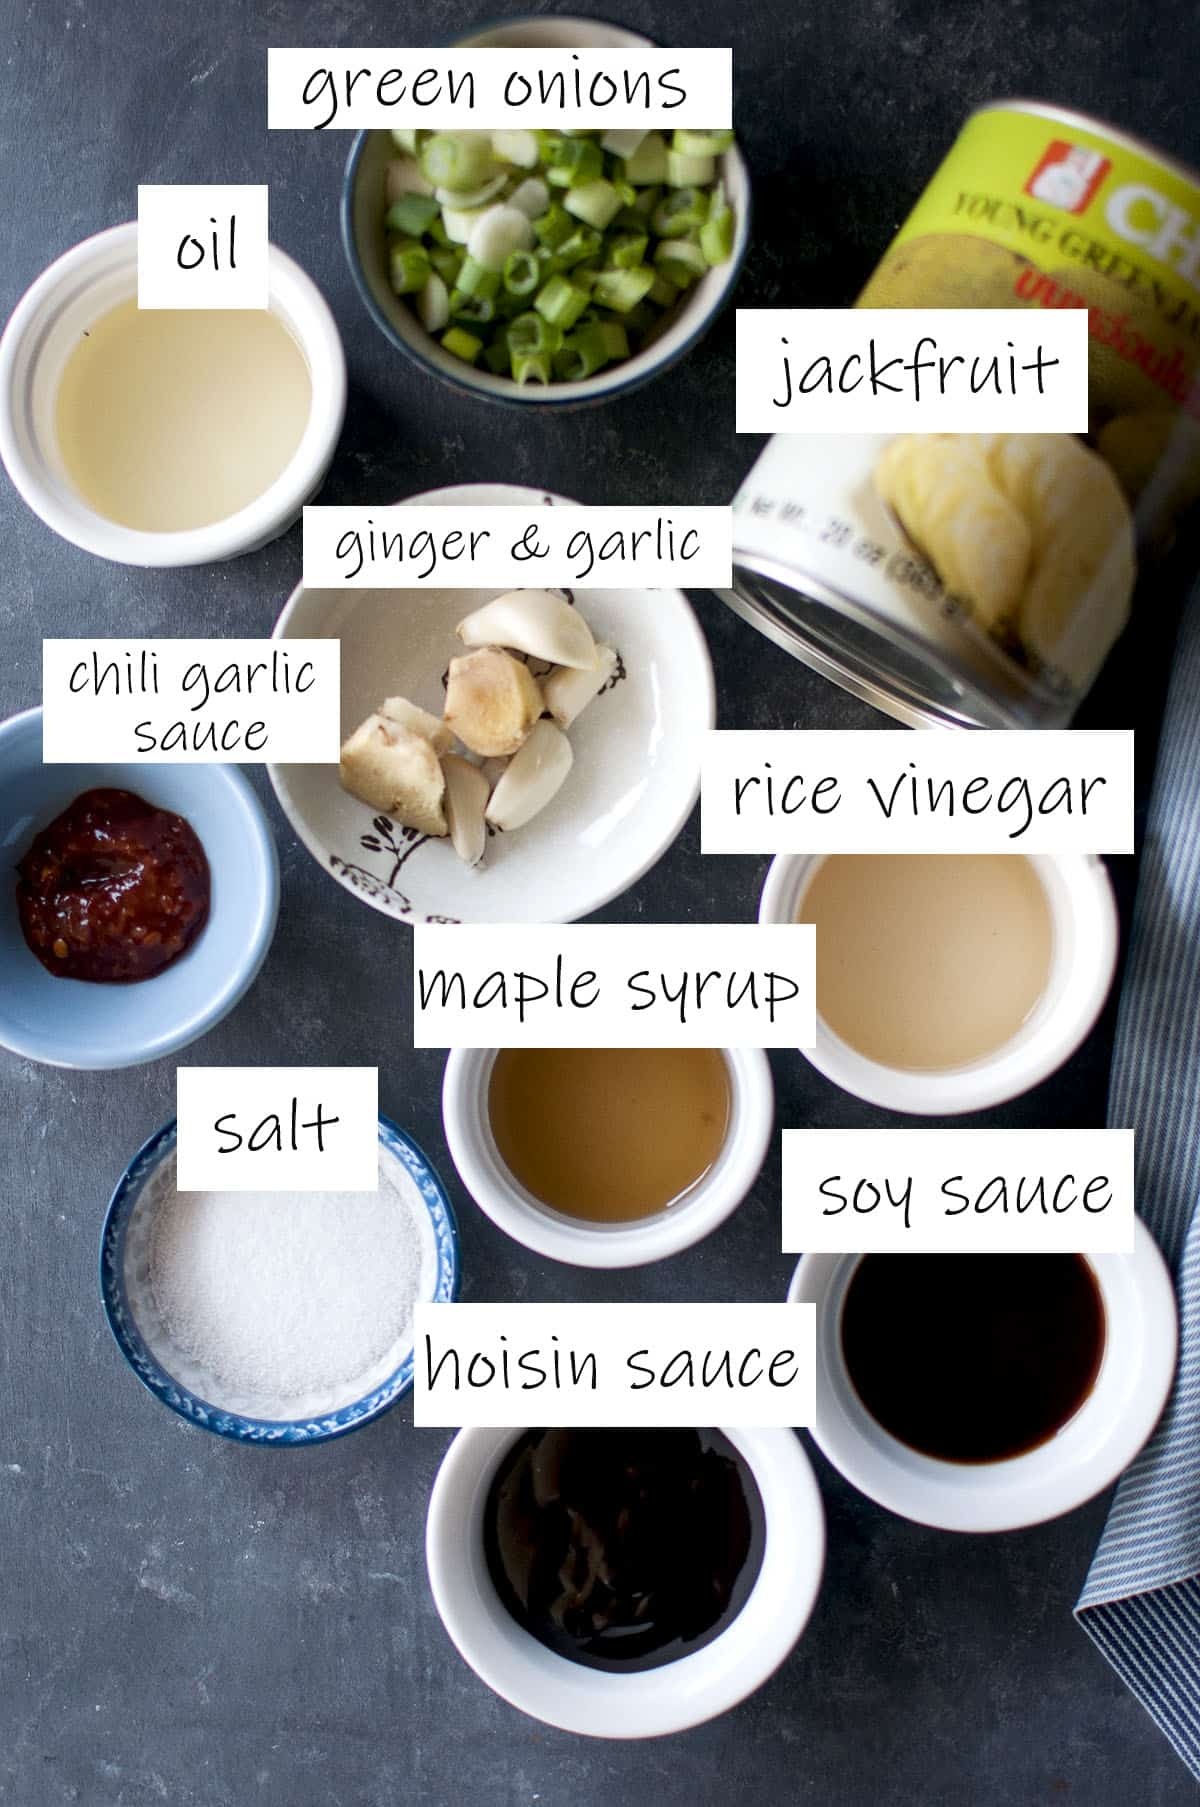 Ingredients needed to make vegan jackfruit filling - details in recipe card